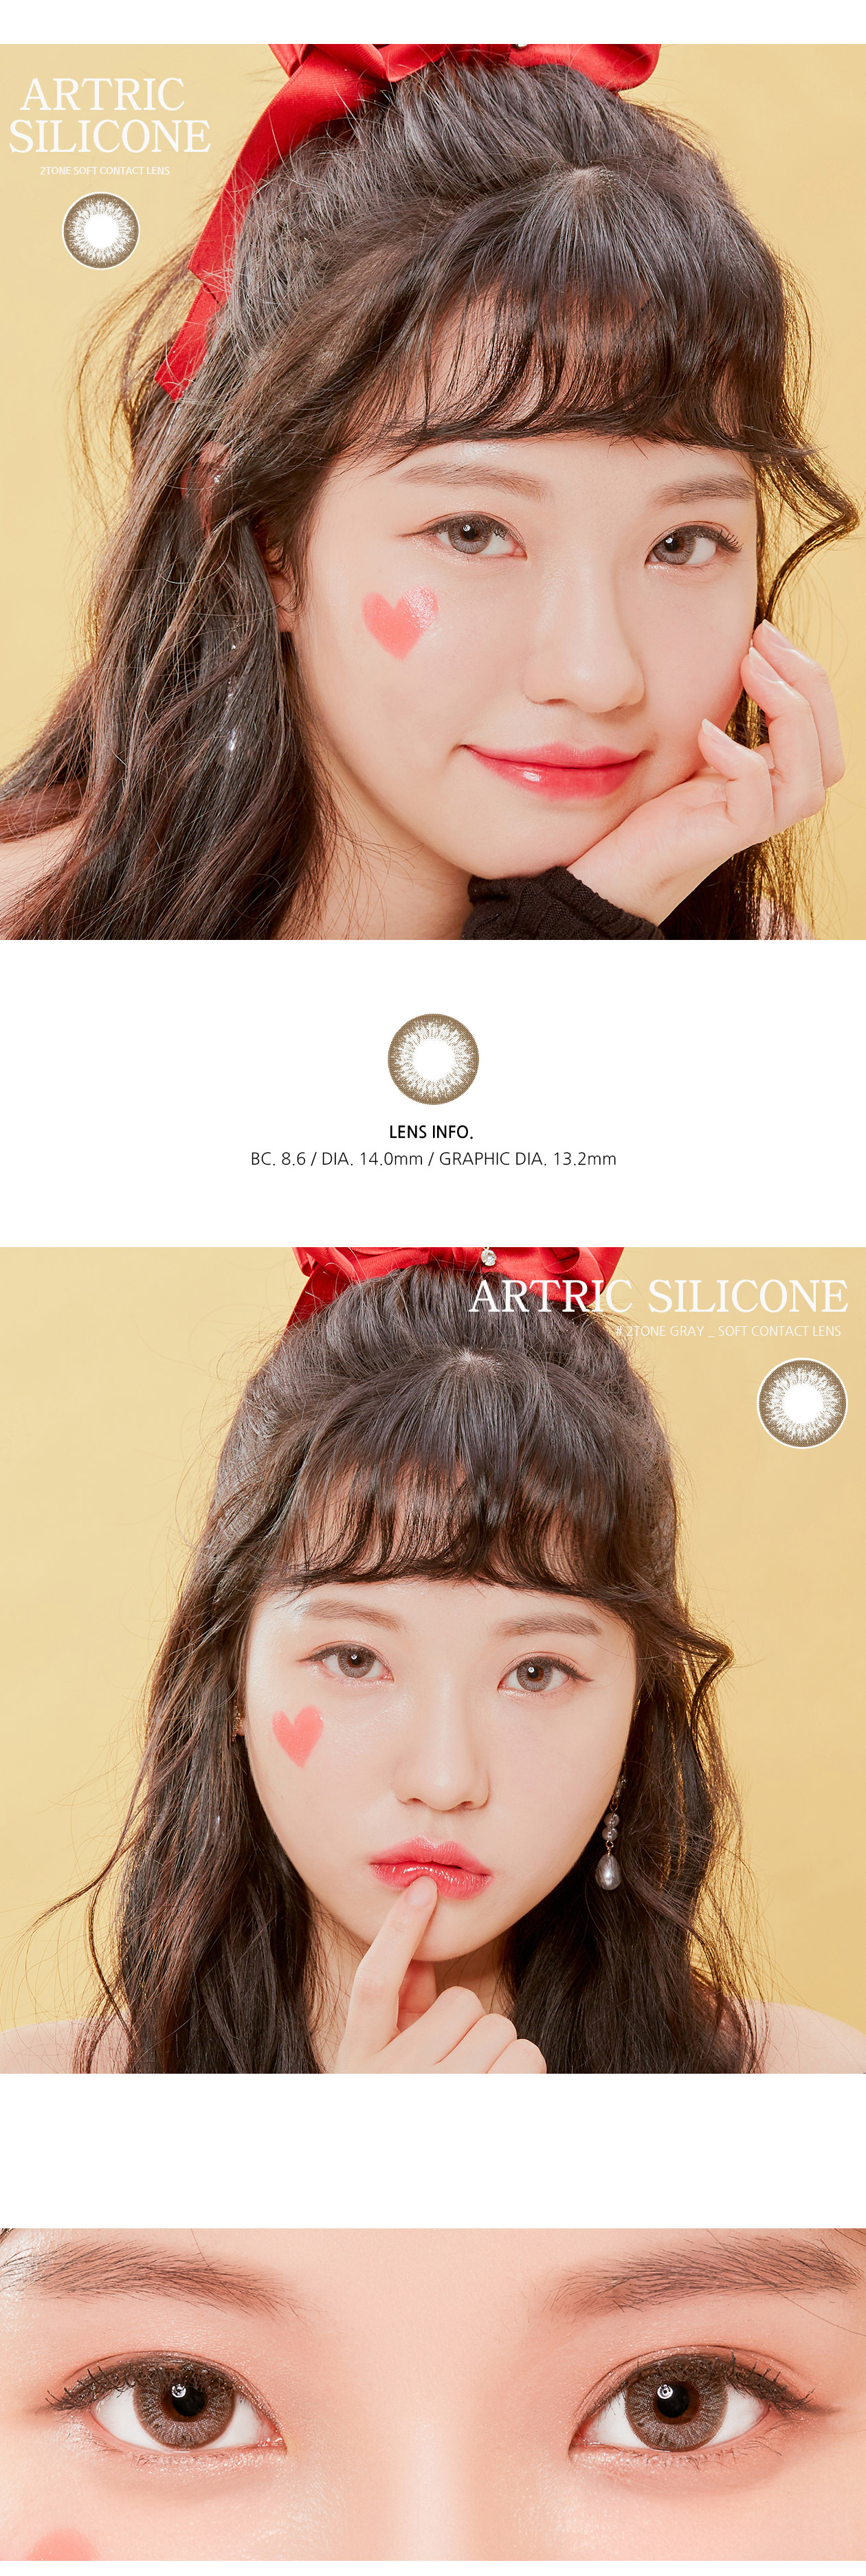 silicone-artric-gray-monthly-circle-lenses.jpg